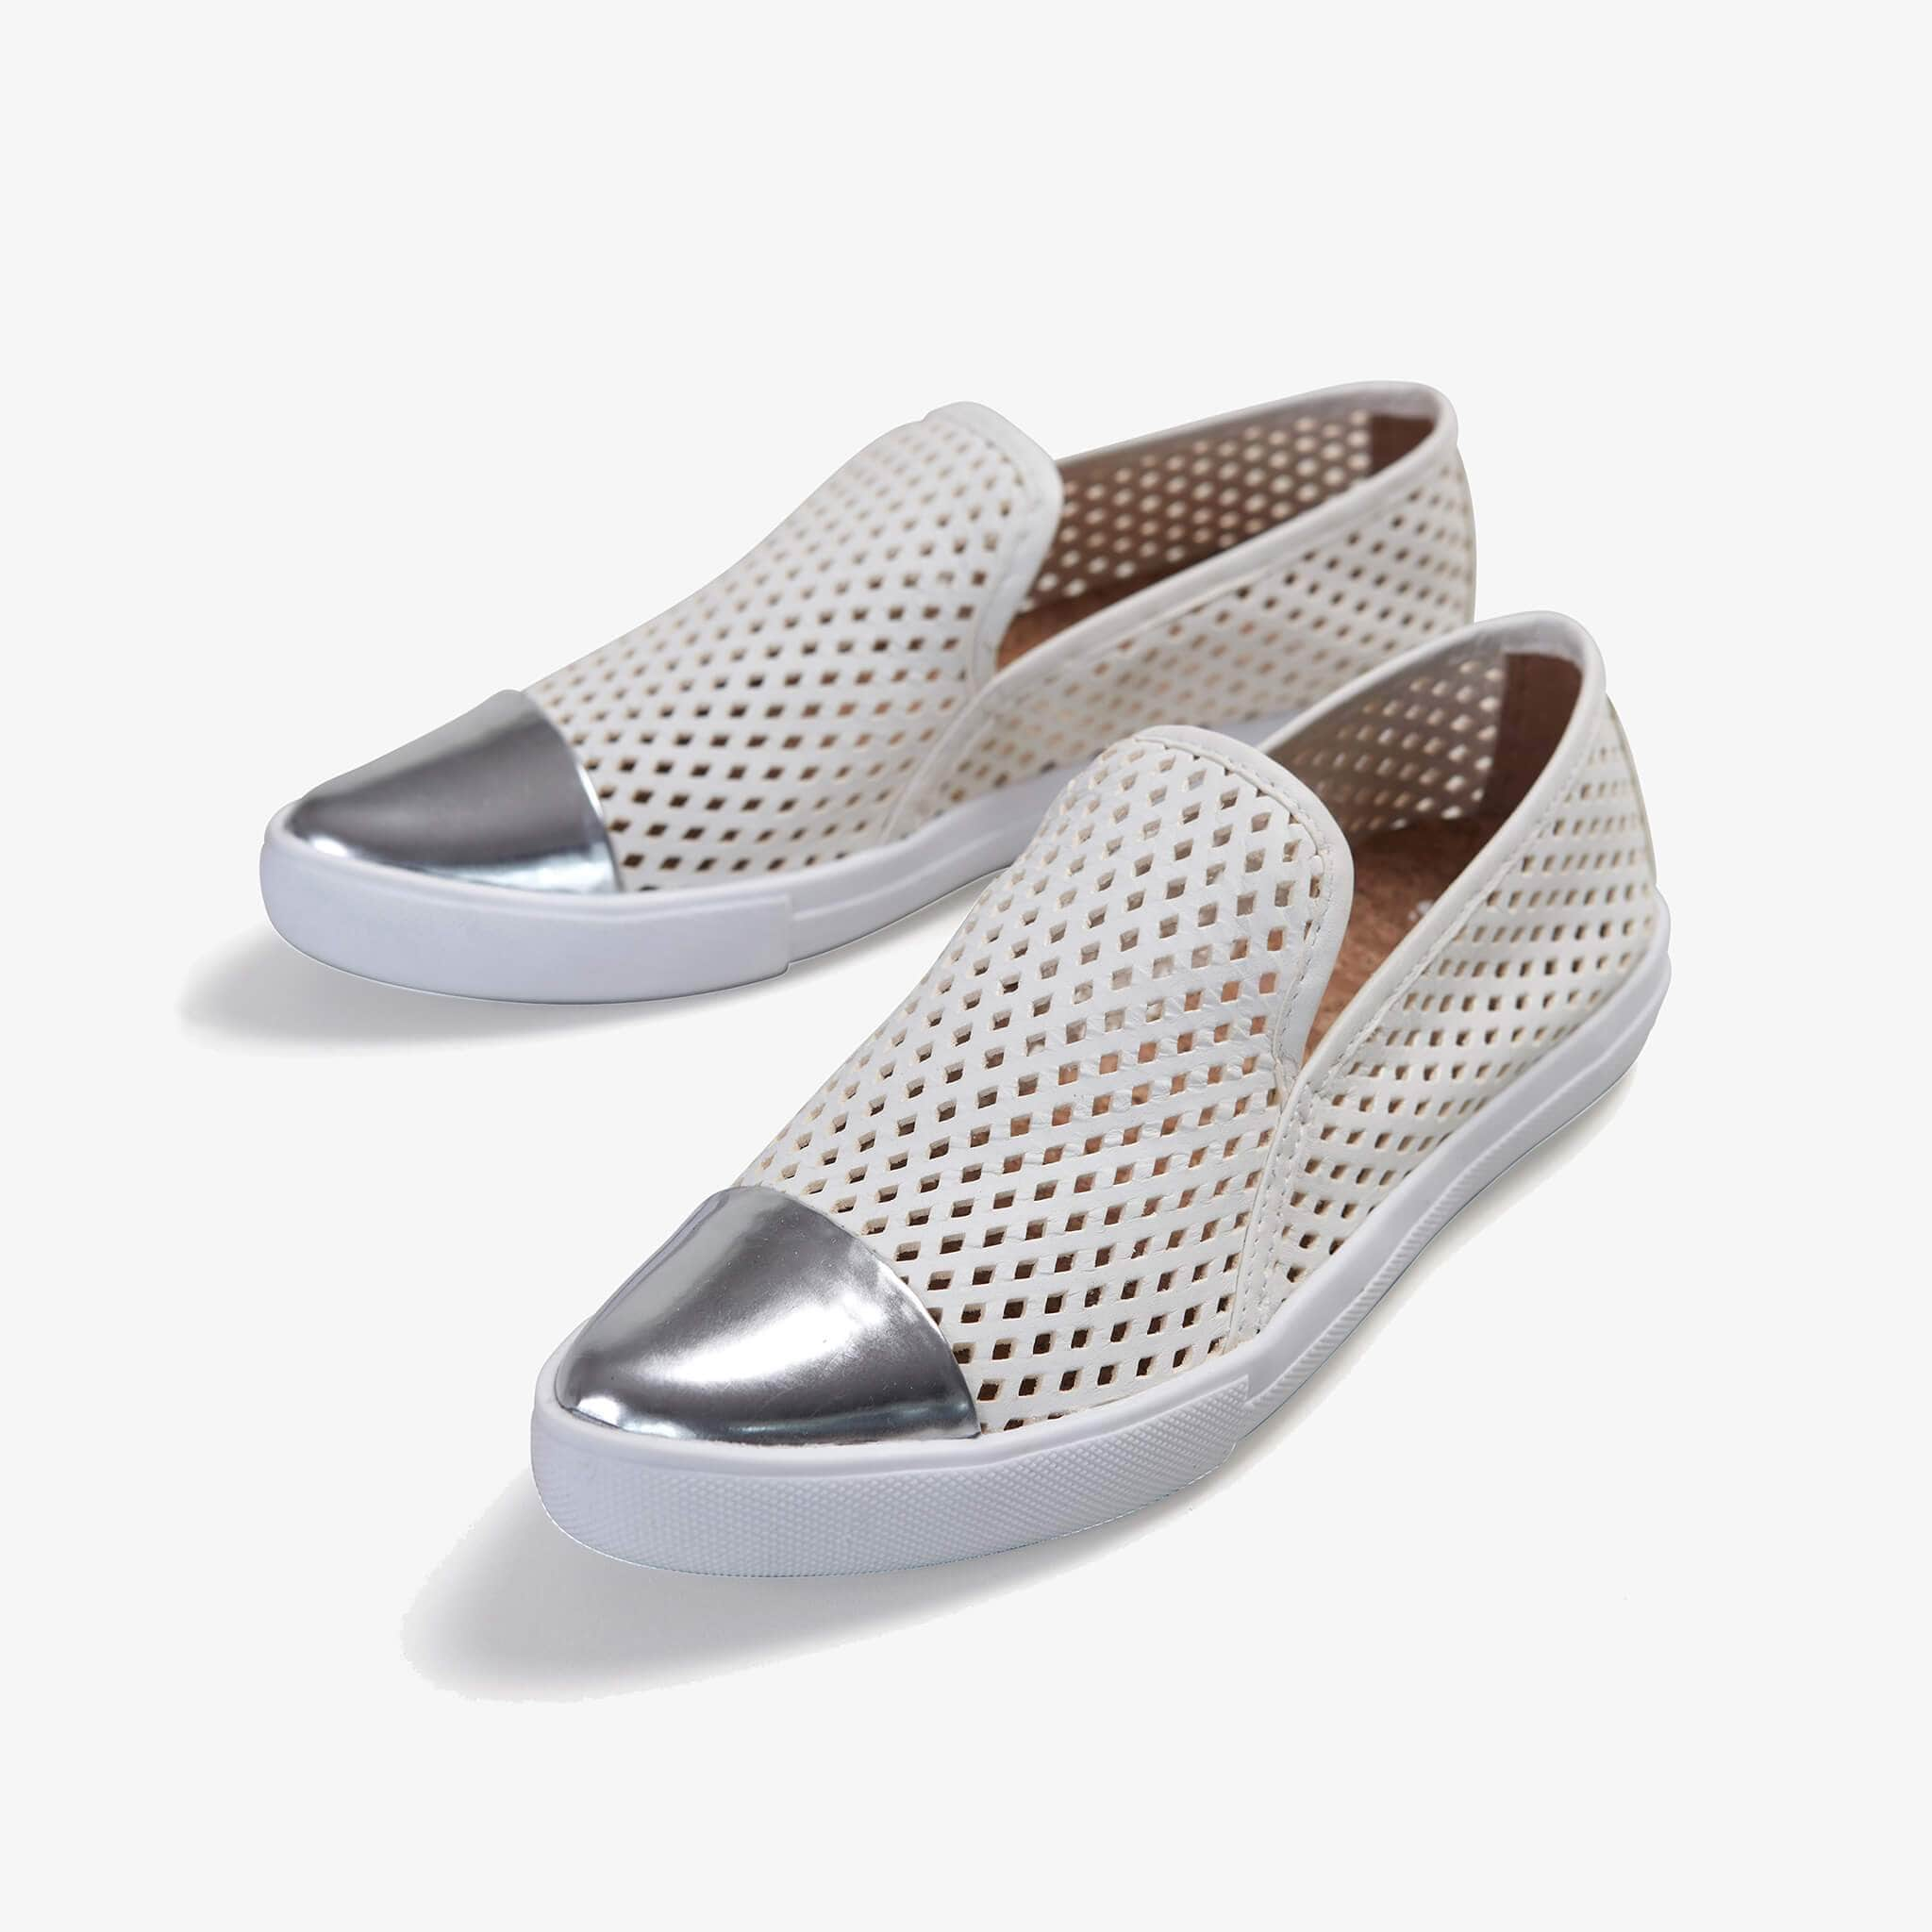 Jibs Slim White + Silver Slip On Sneaker Flat Pair